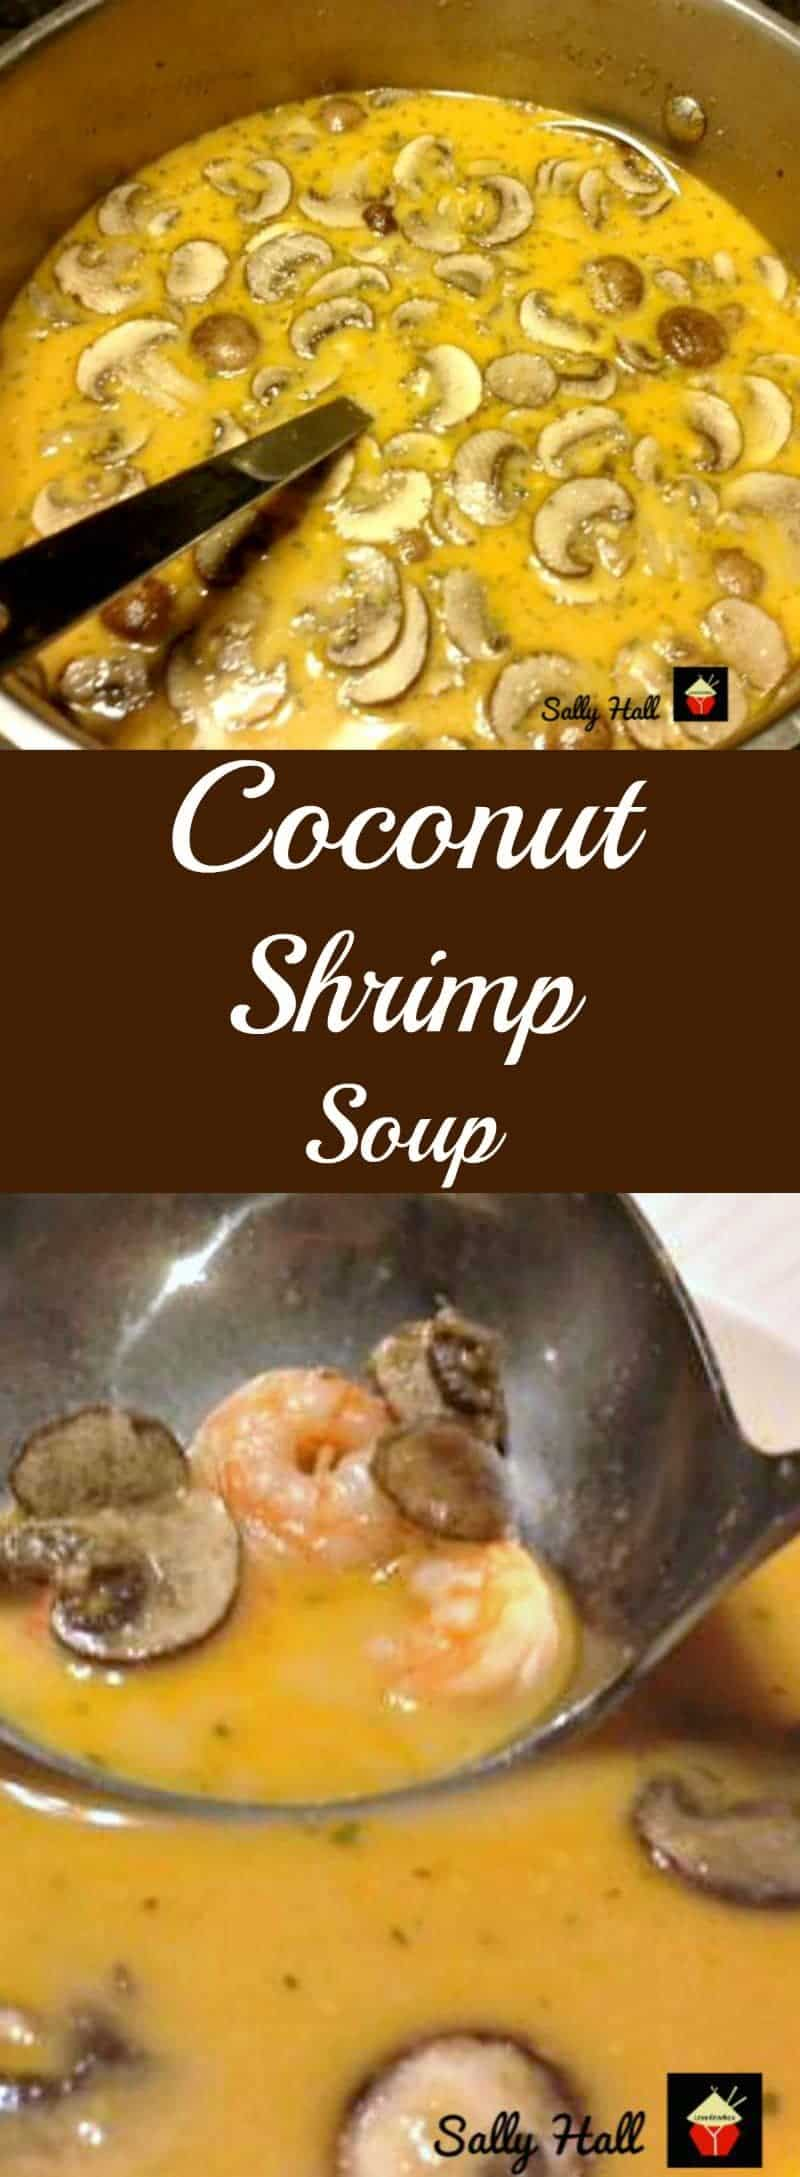 Coconut Shrimp Soup with the flavors of Asia. This is a wonderful warming soup, suitable as an appetizer or main